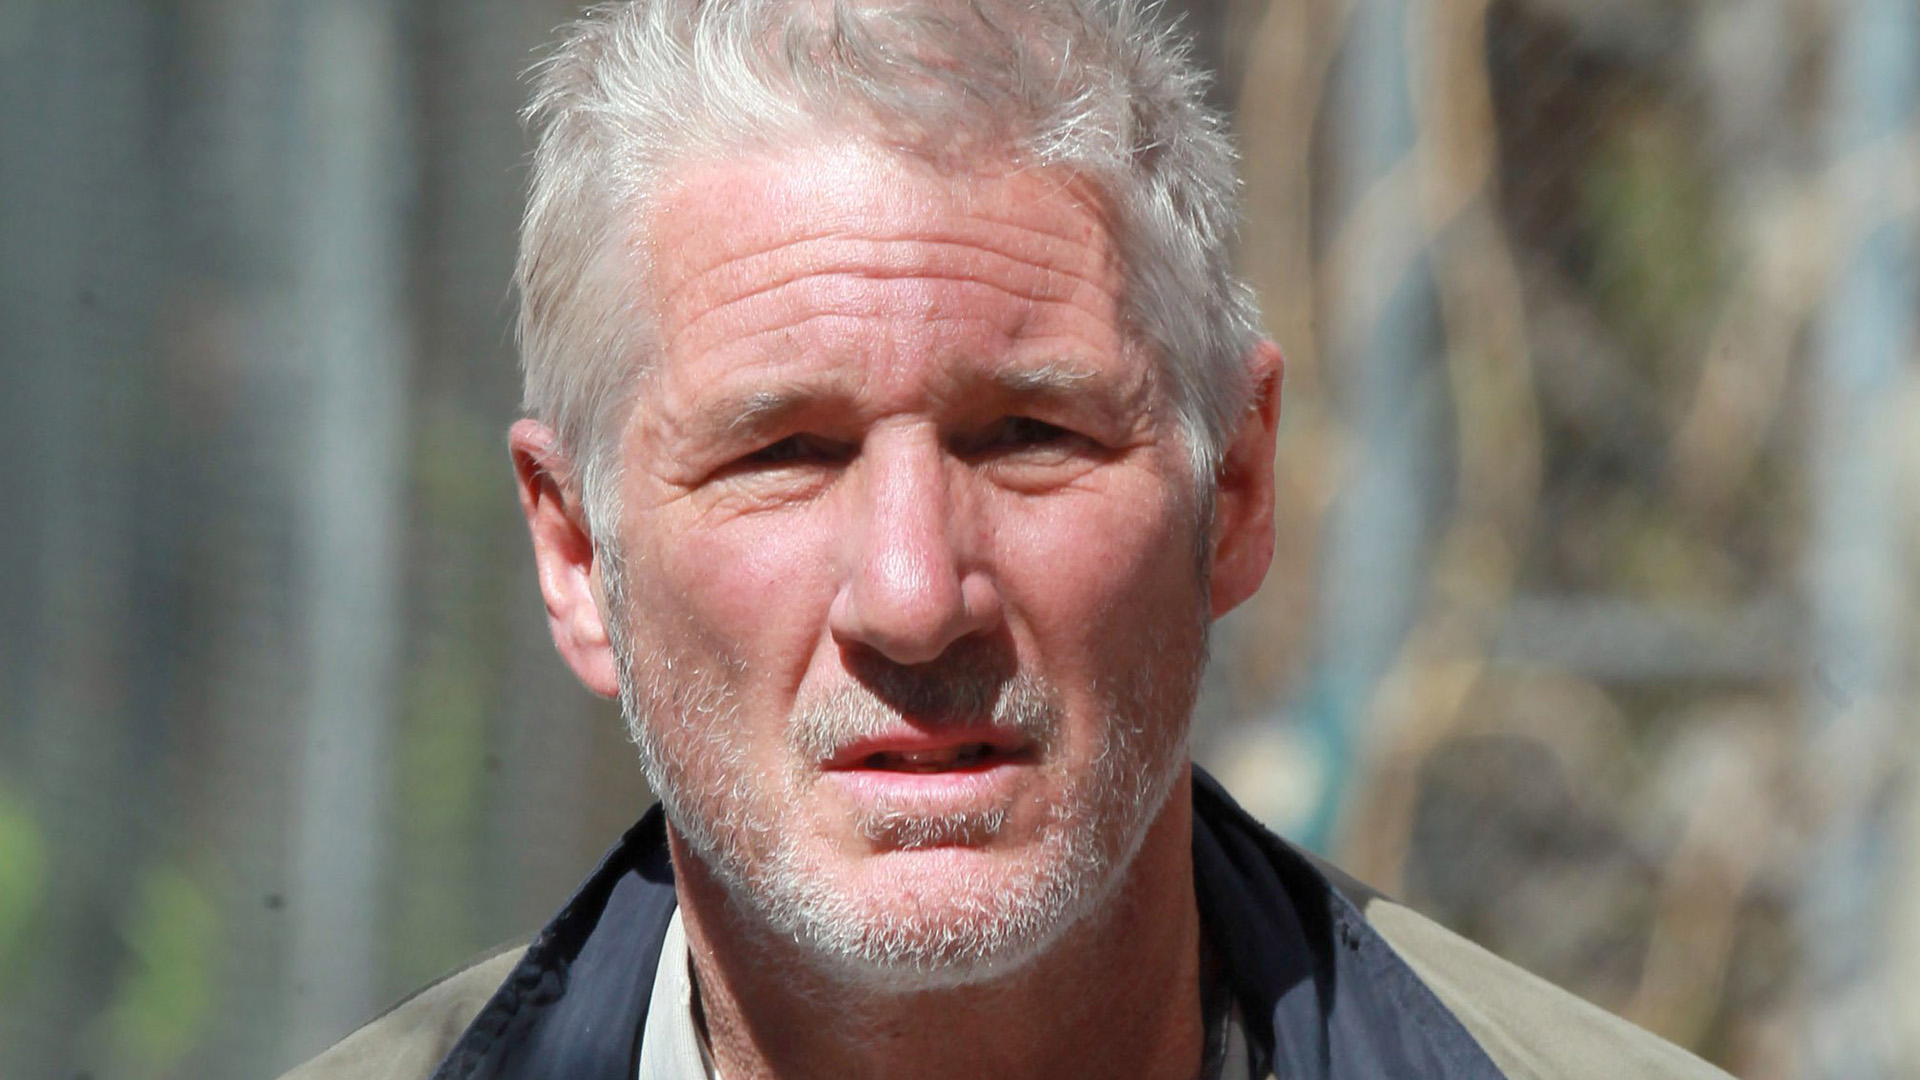 Tourist gives homeless Richard Gere her leftover pizza 1920x1080